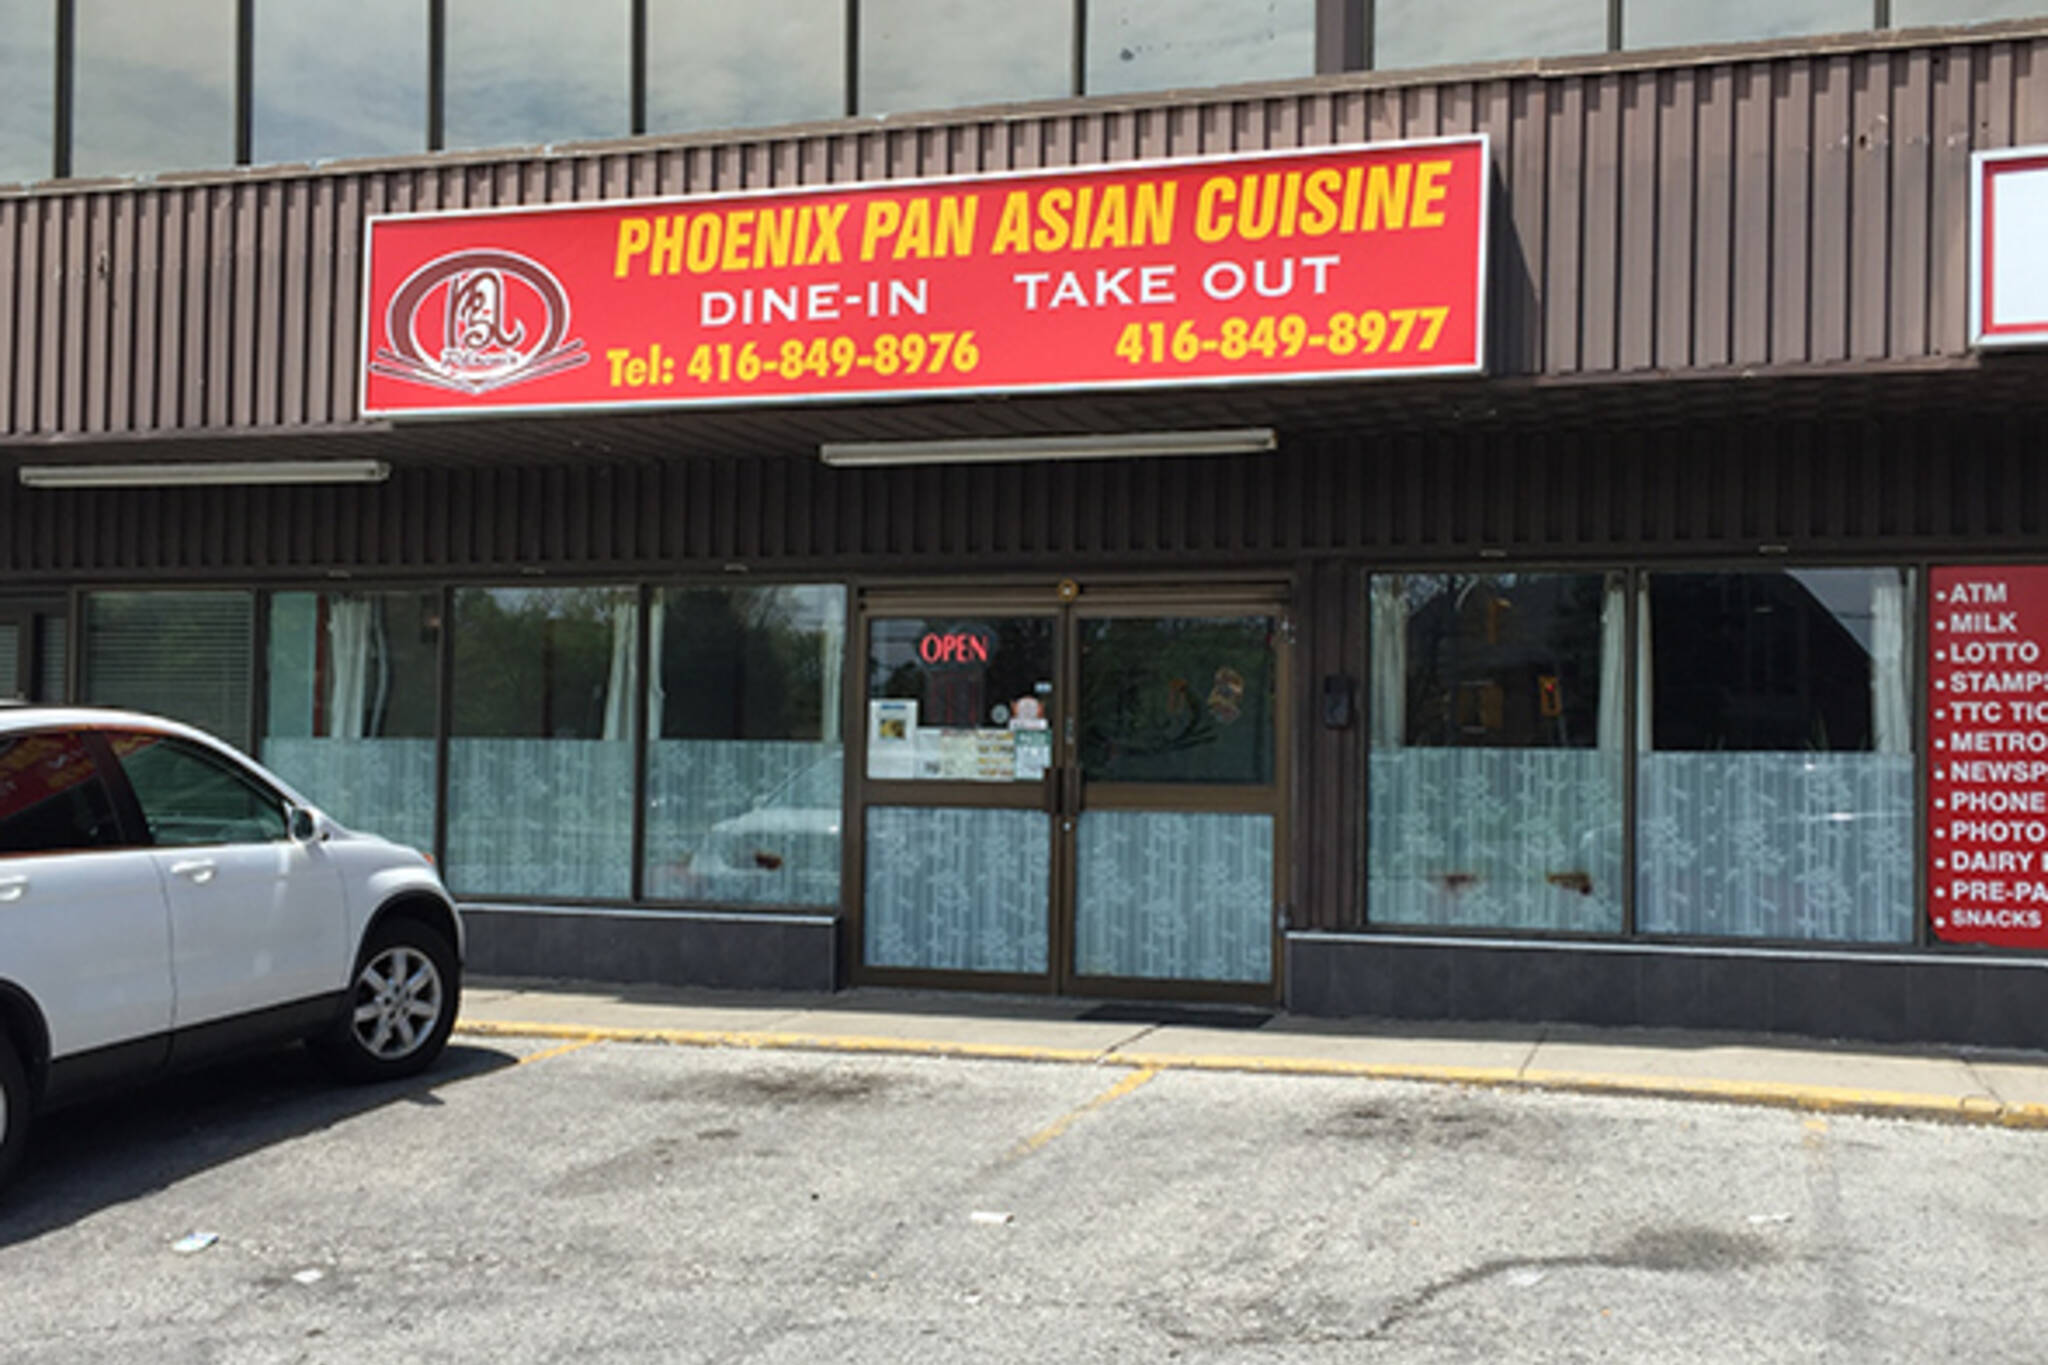 Phoenix Pan Asian Cuisine